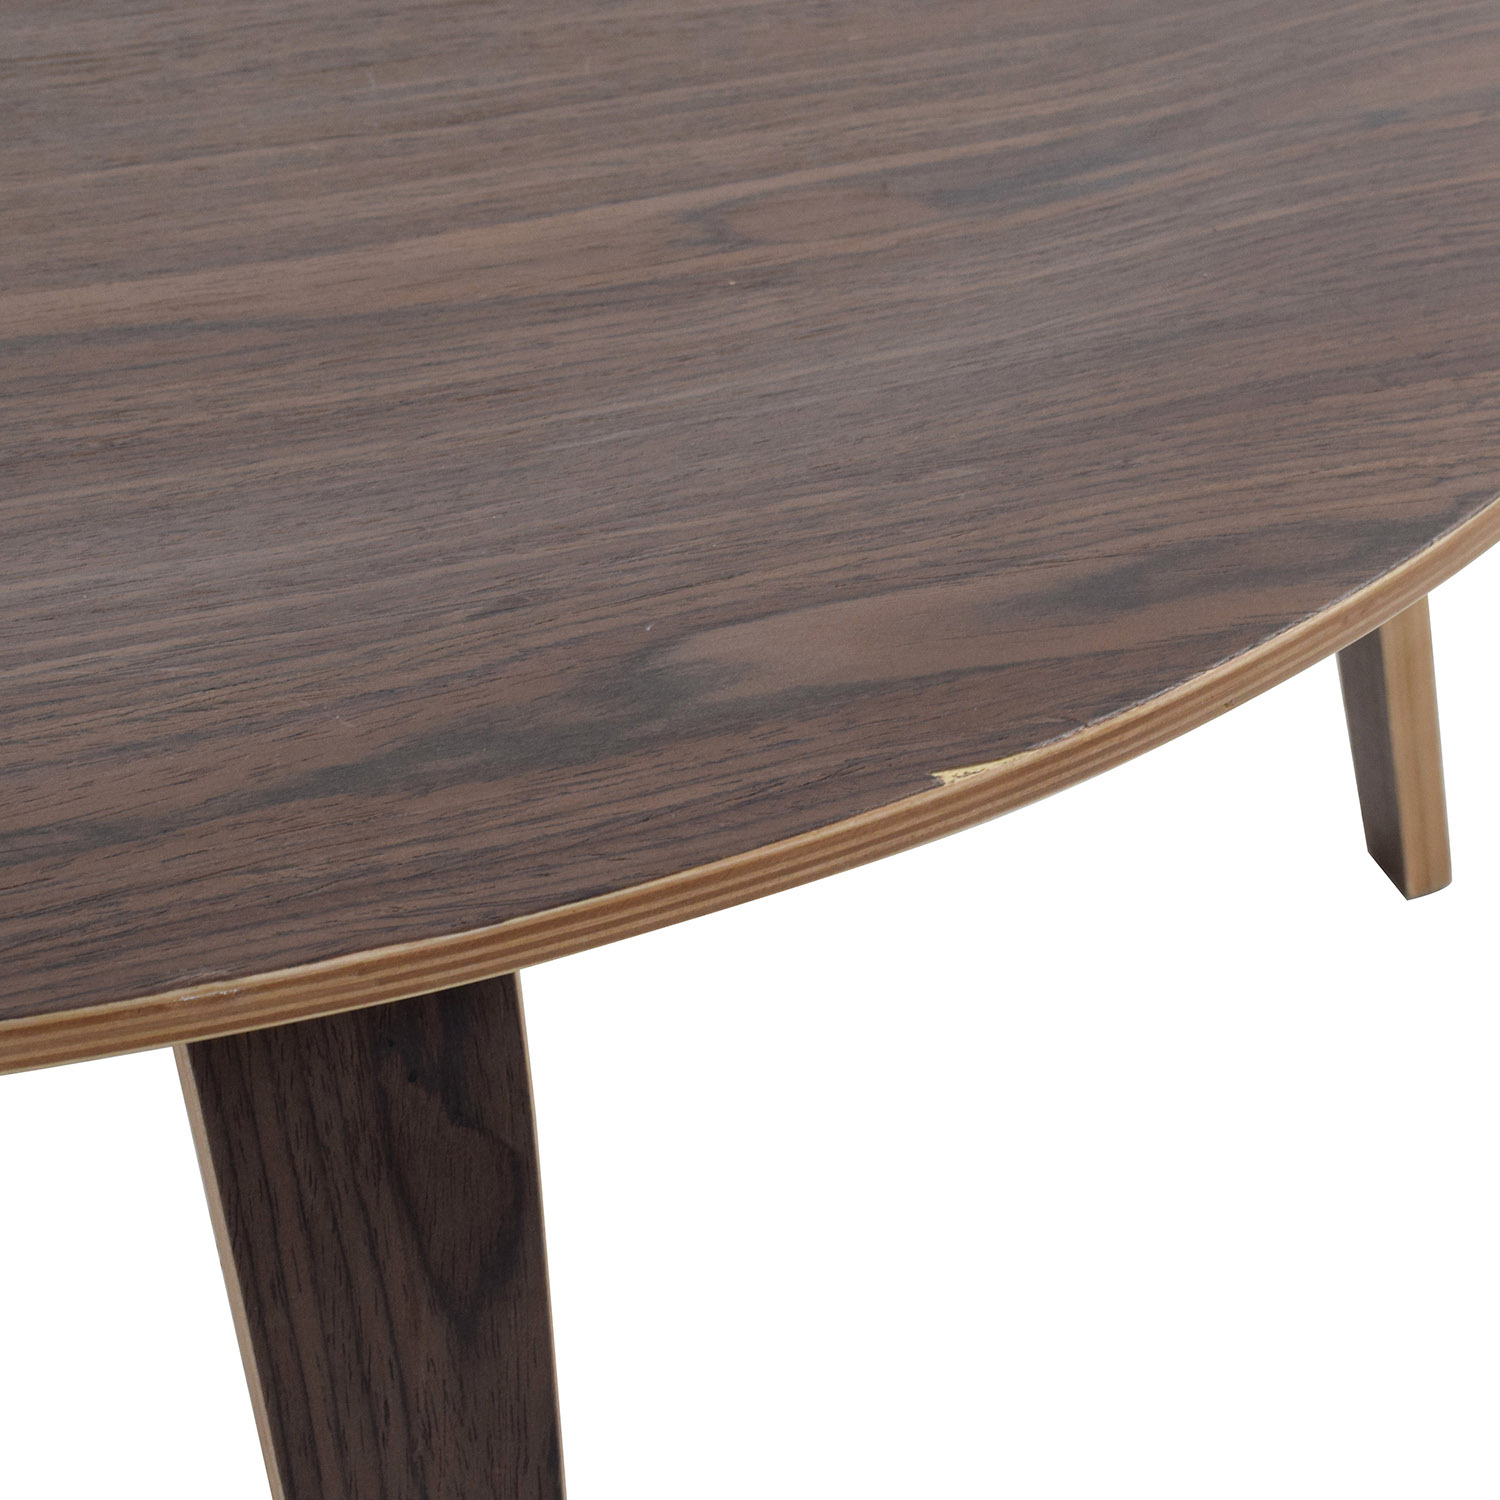 48% OFF Modway Modway Round Coffee Table Tables